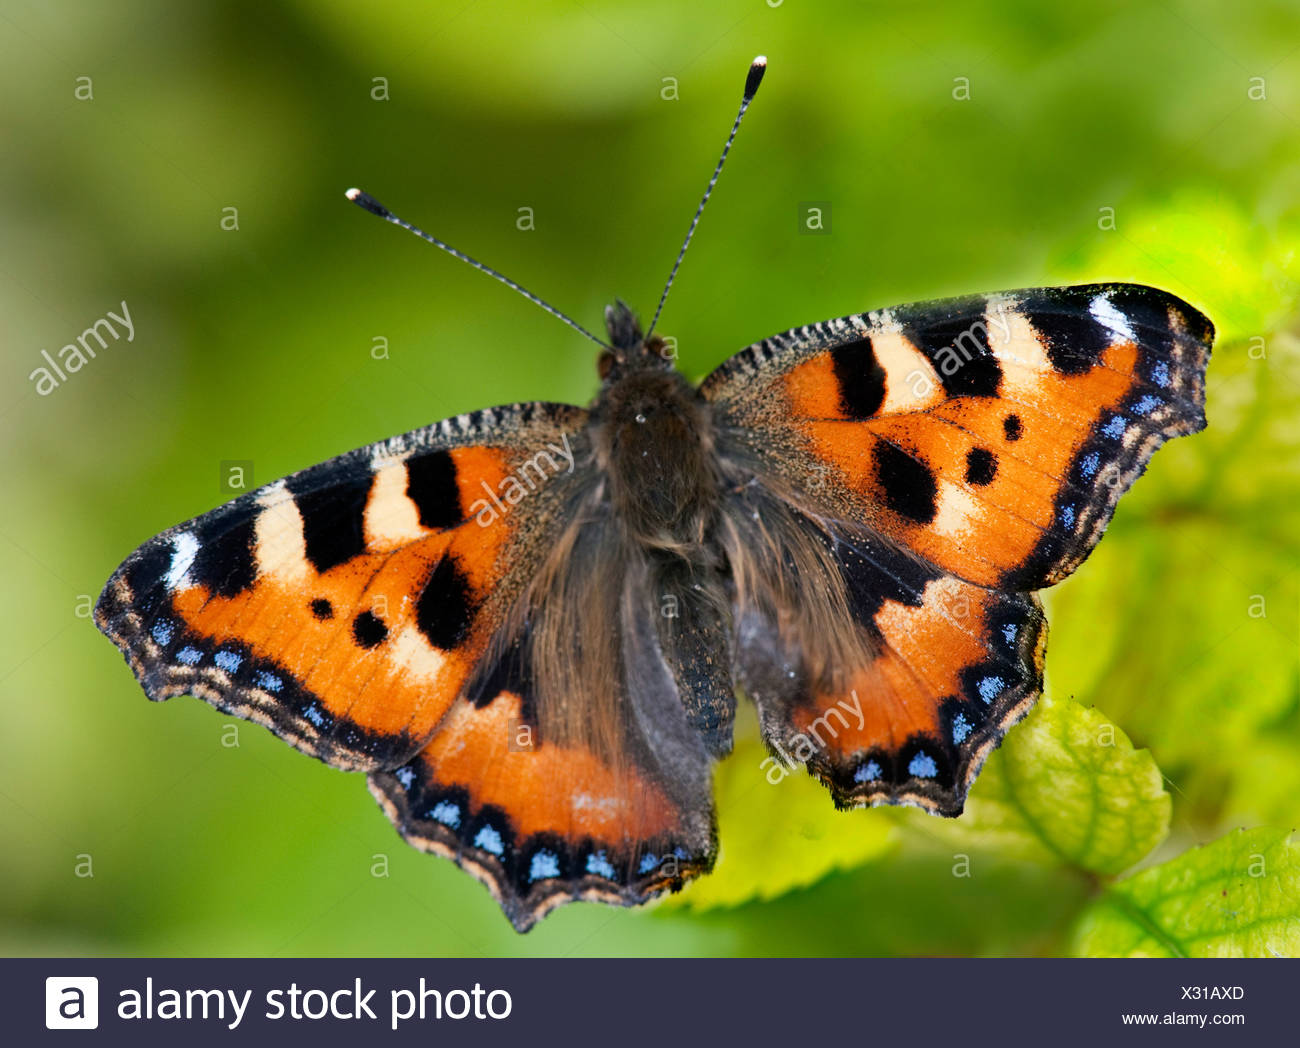 Small Tortoiseshell Butterfly Aglais urticae resting with wings open on leaves in garden - Stock Image